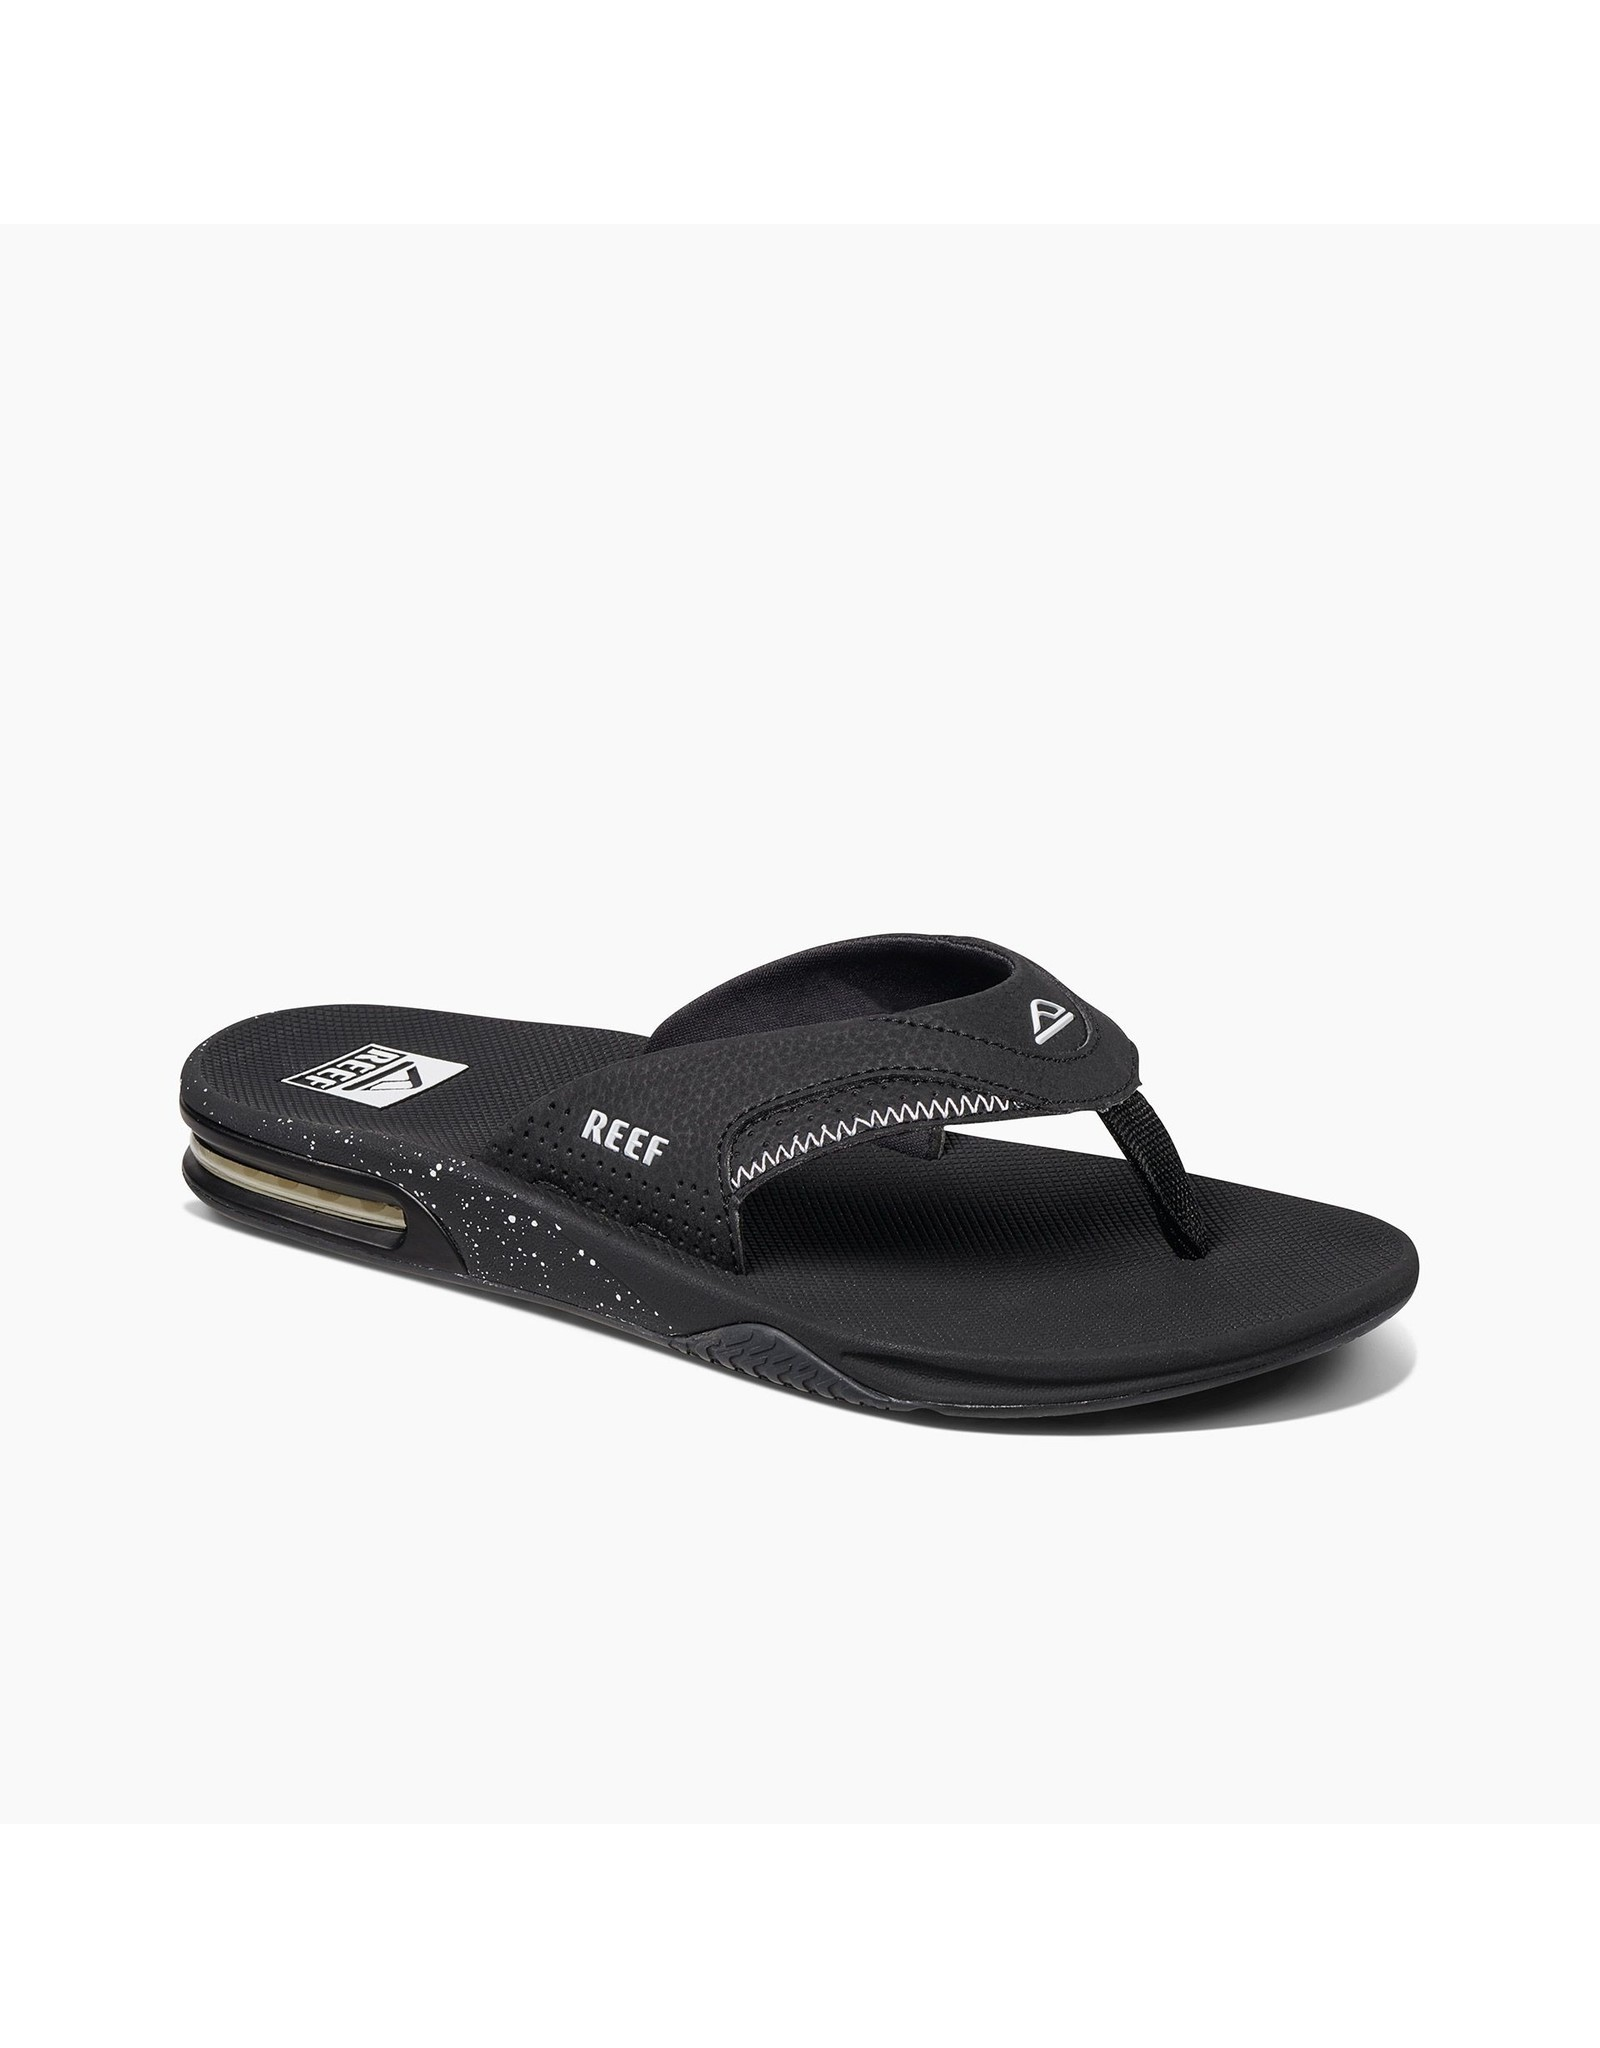 REEF MEN'S FANNING-BLACK/BLACK/WHITE